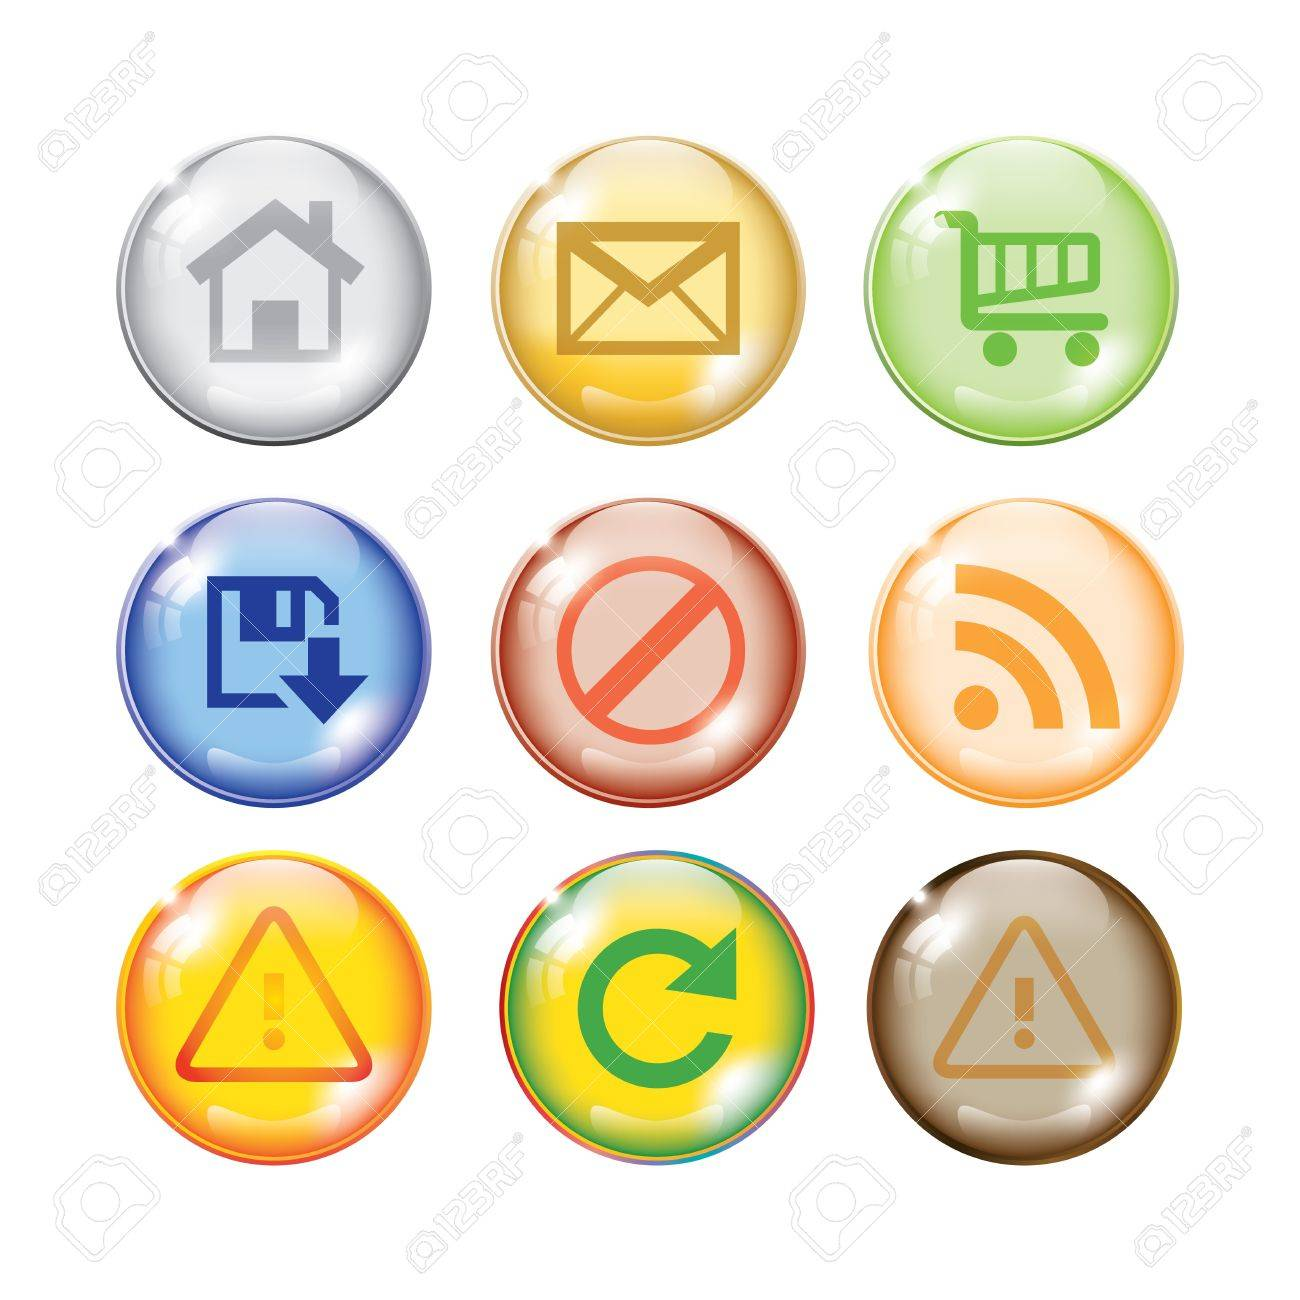 Glossy shiny multi color icon set for web websites Stock Vector - 13487719